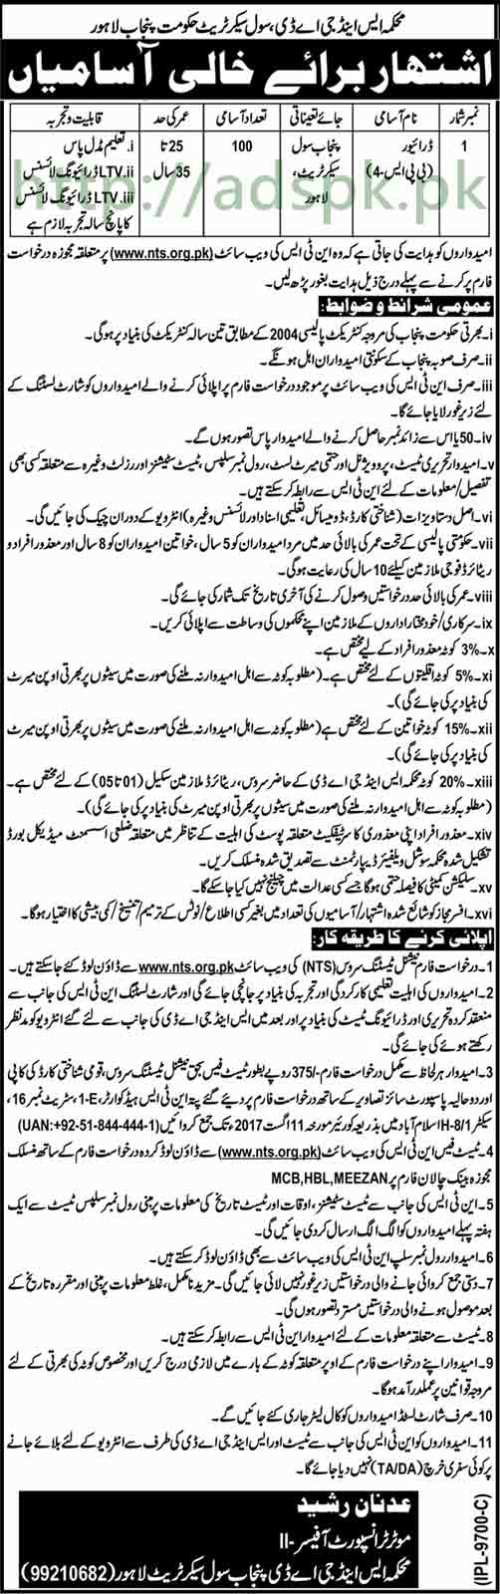 NTS 100 Driver Jobs Services and General Administration Department S&GAD Civil Secretariat Lahore Jobs 2017 NTS Written MCQs Test Syllabus Paper for Driver Jobs Application Form Deadline 11-08-2017 Apply Now by NTS Pakistan